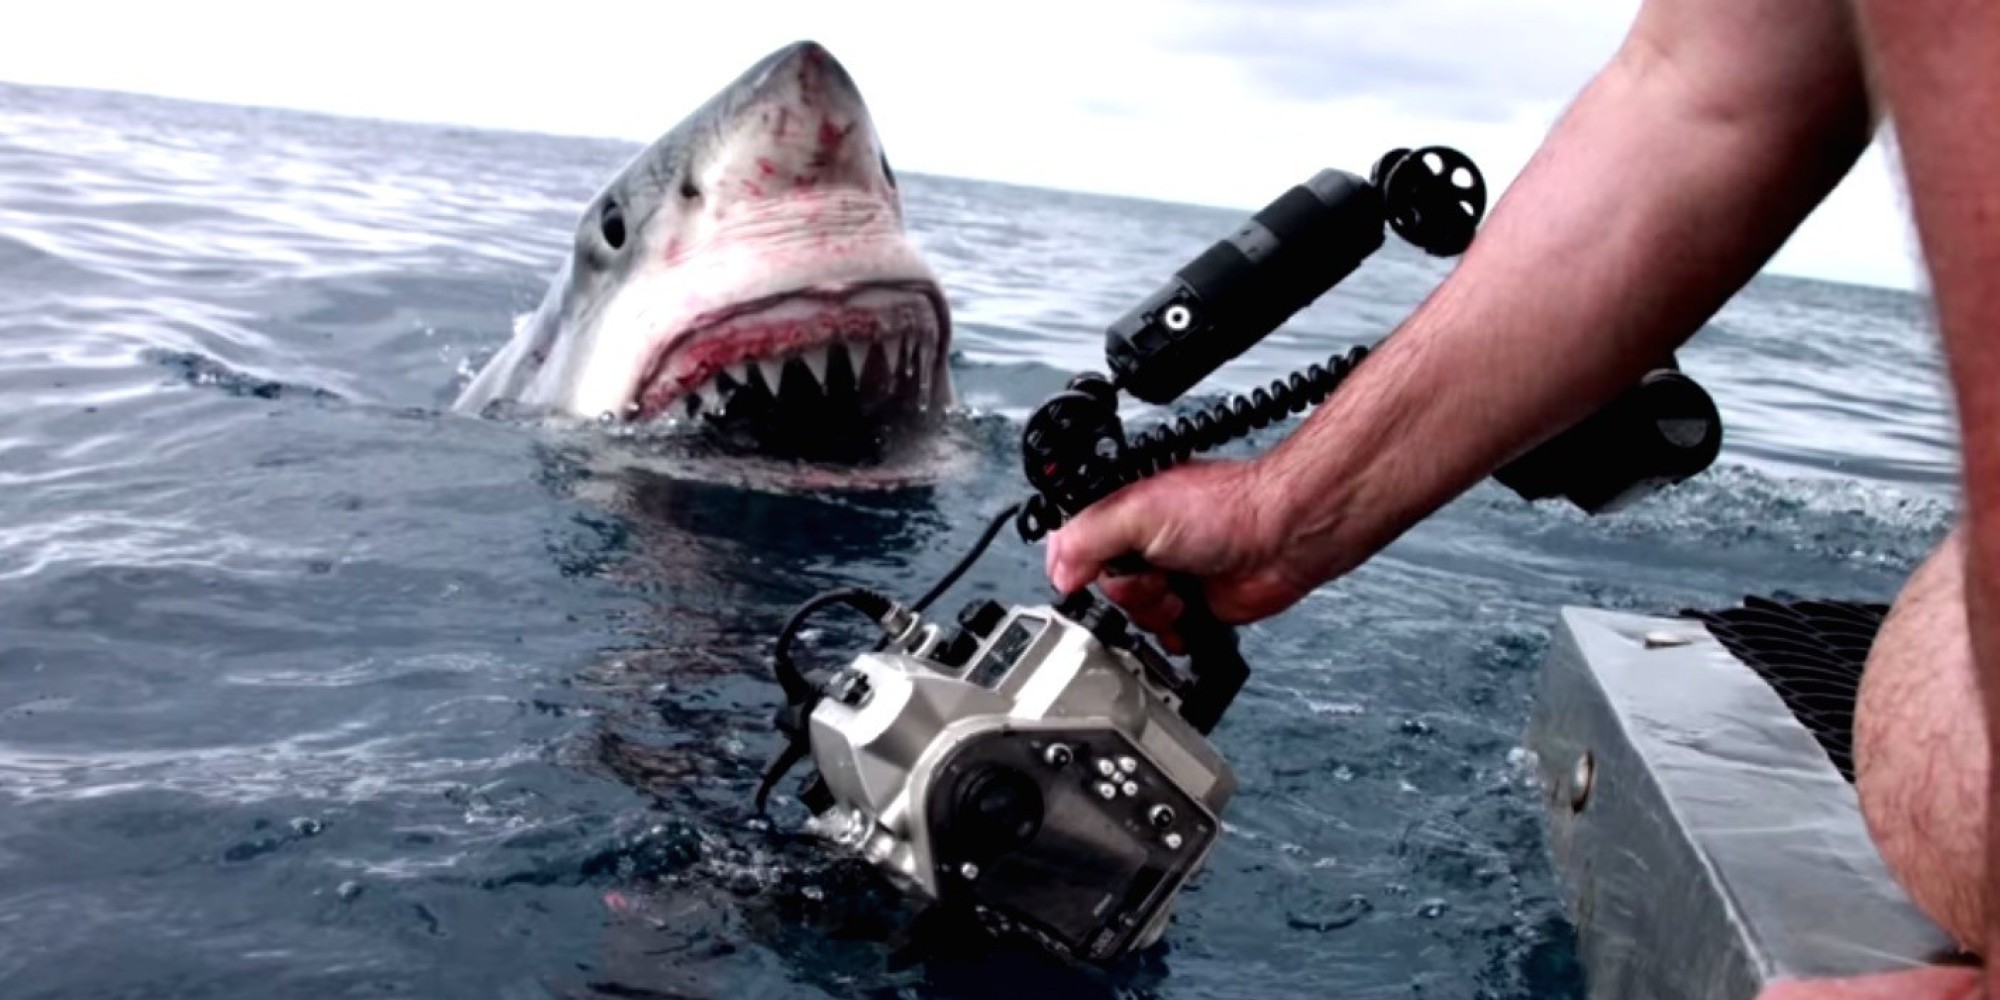 NZ Attack Wallpaper: 'Curious' Great White Shark Gets Up Close And Personal